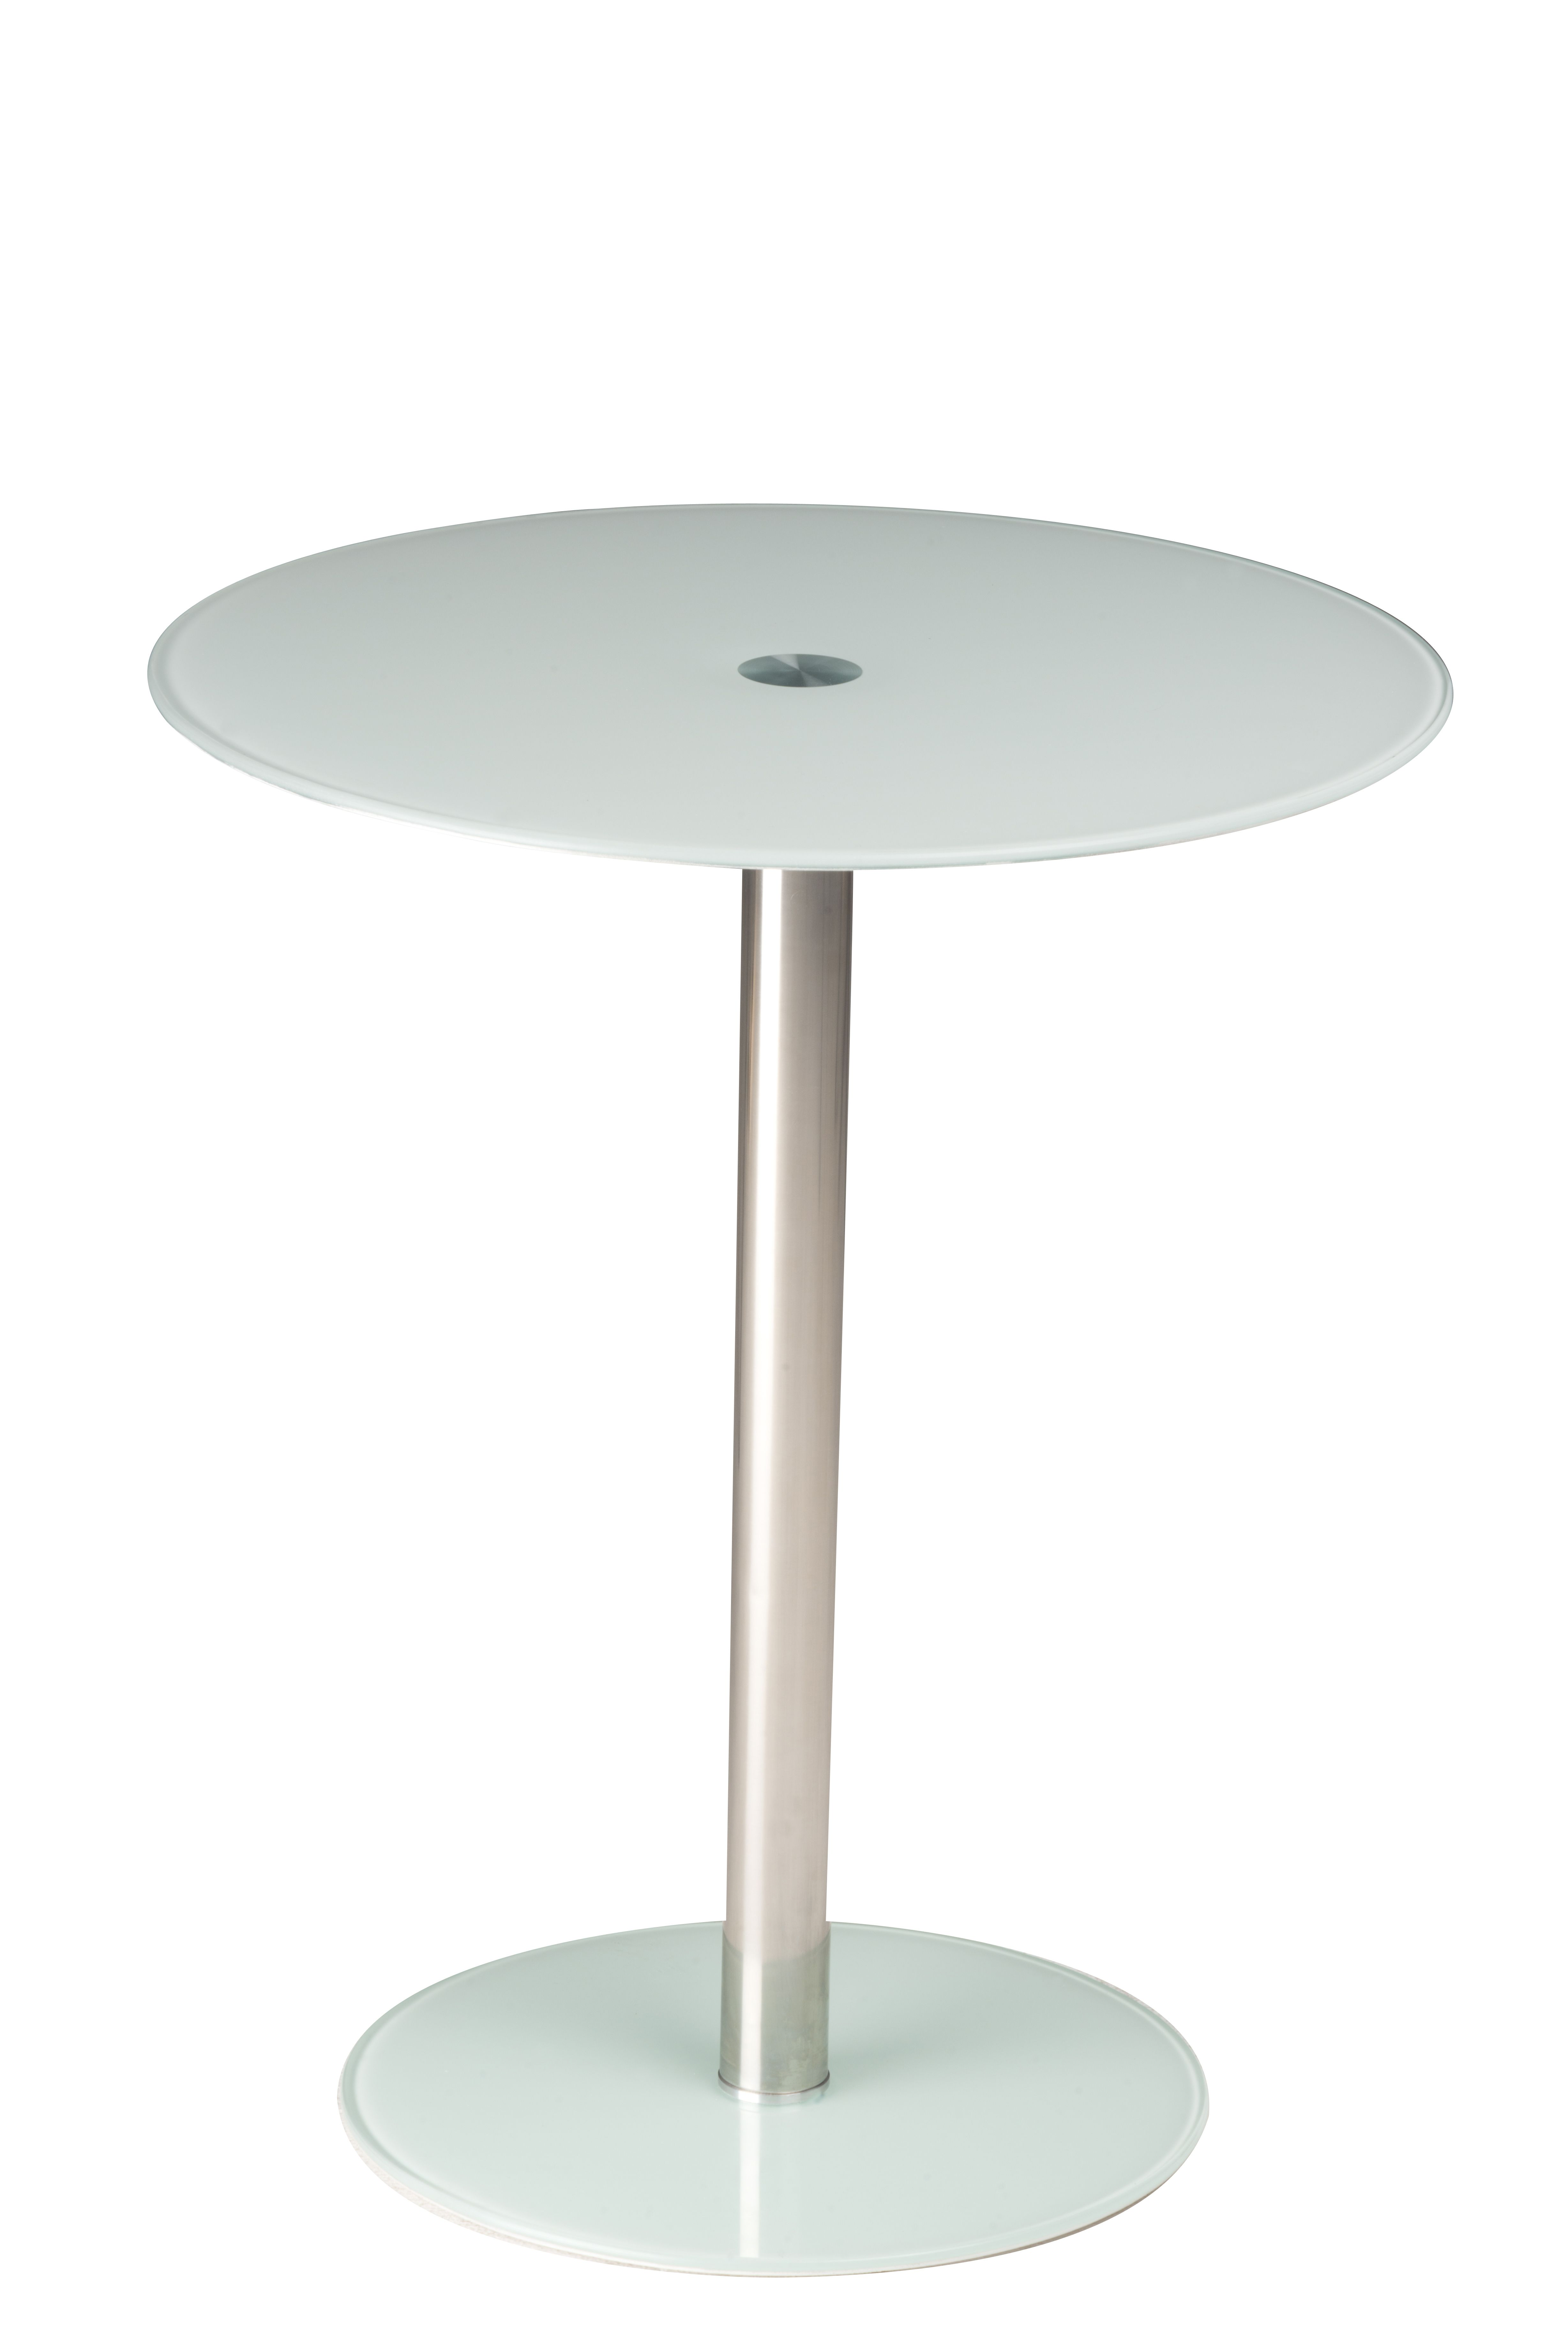 43 Office Furniture Accent Tables